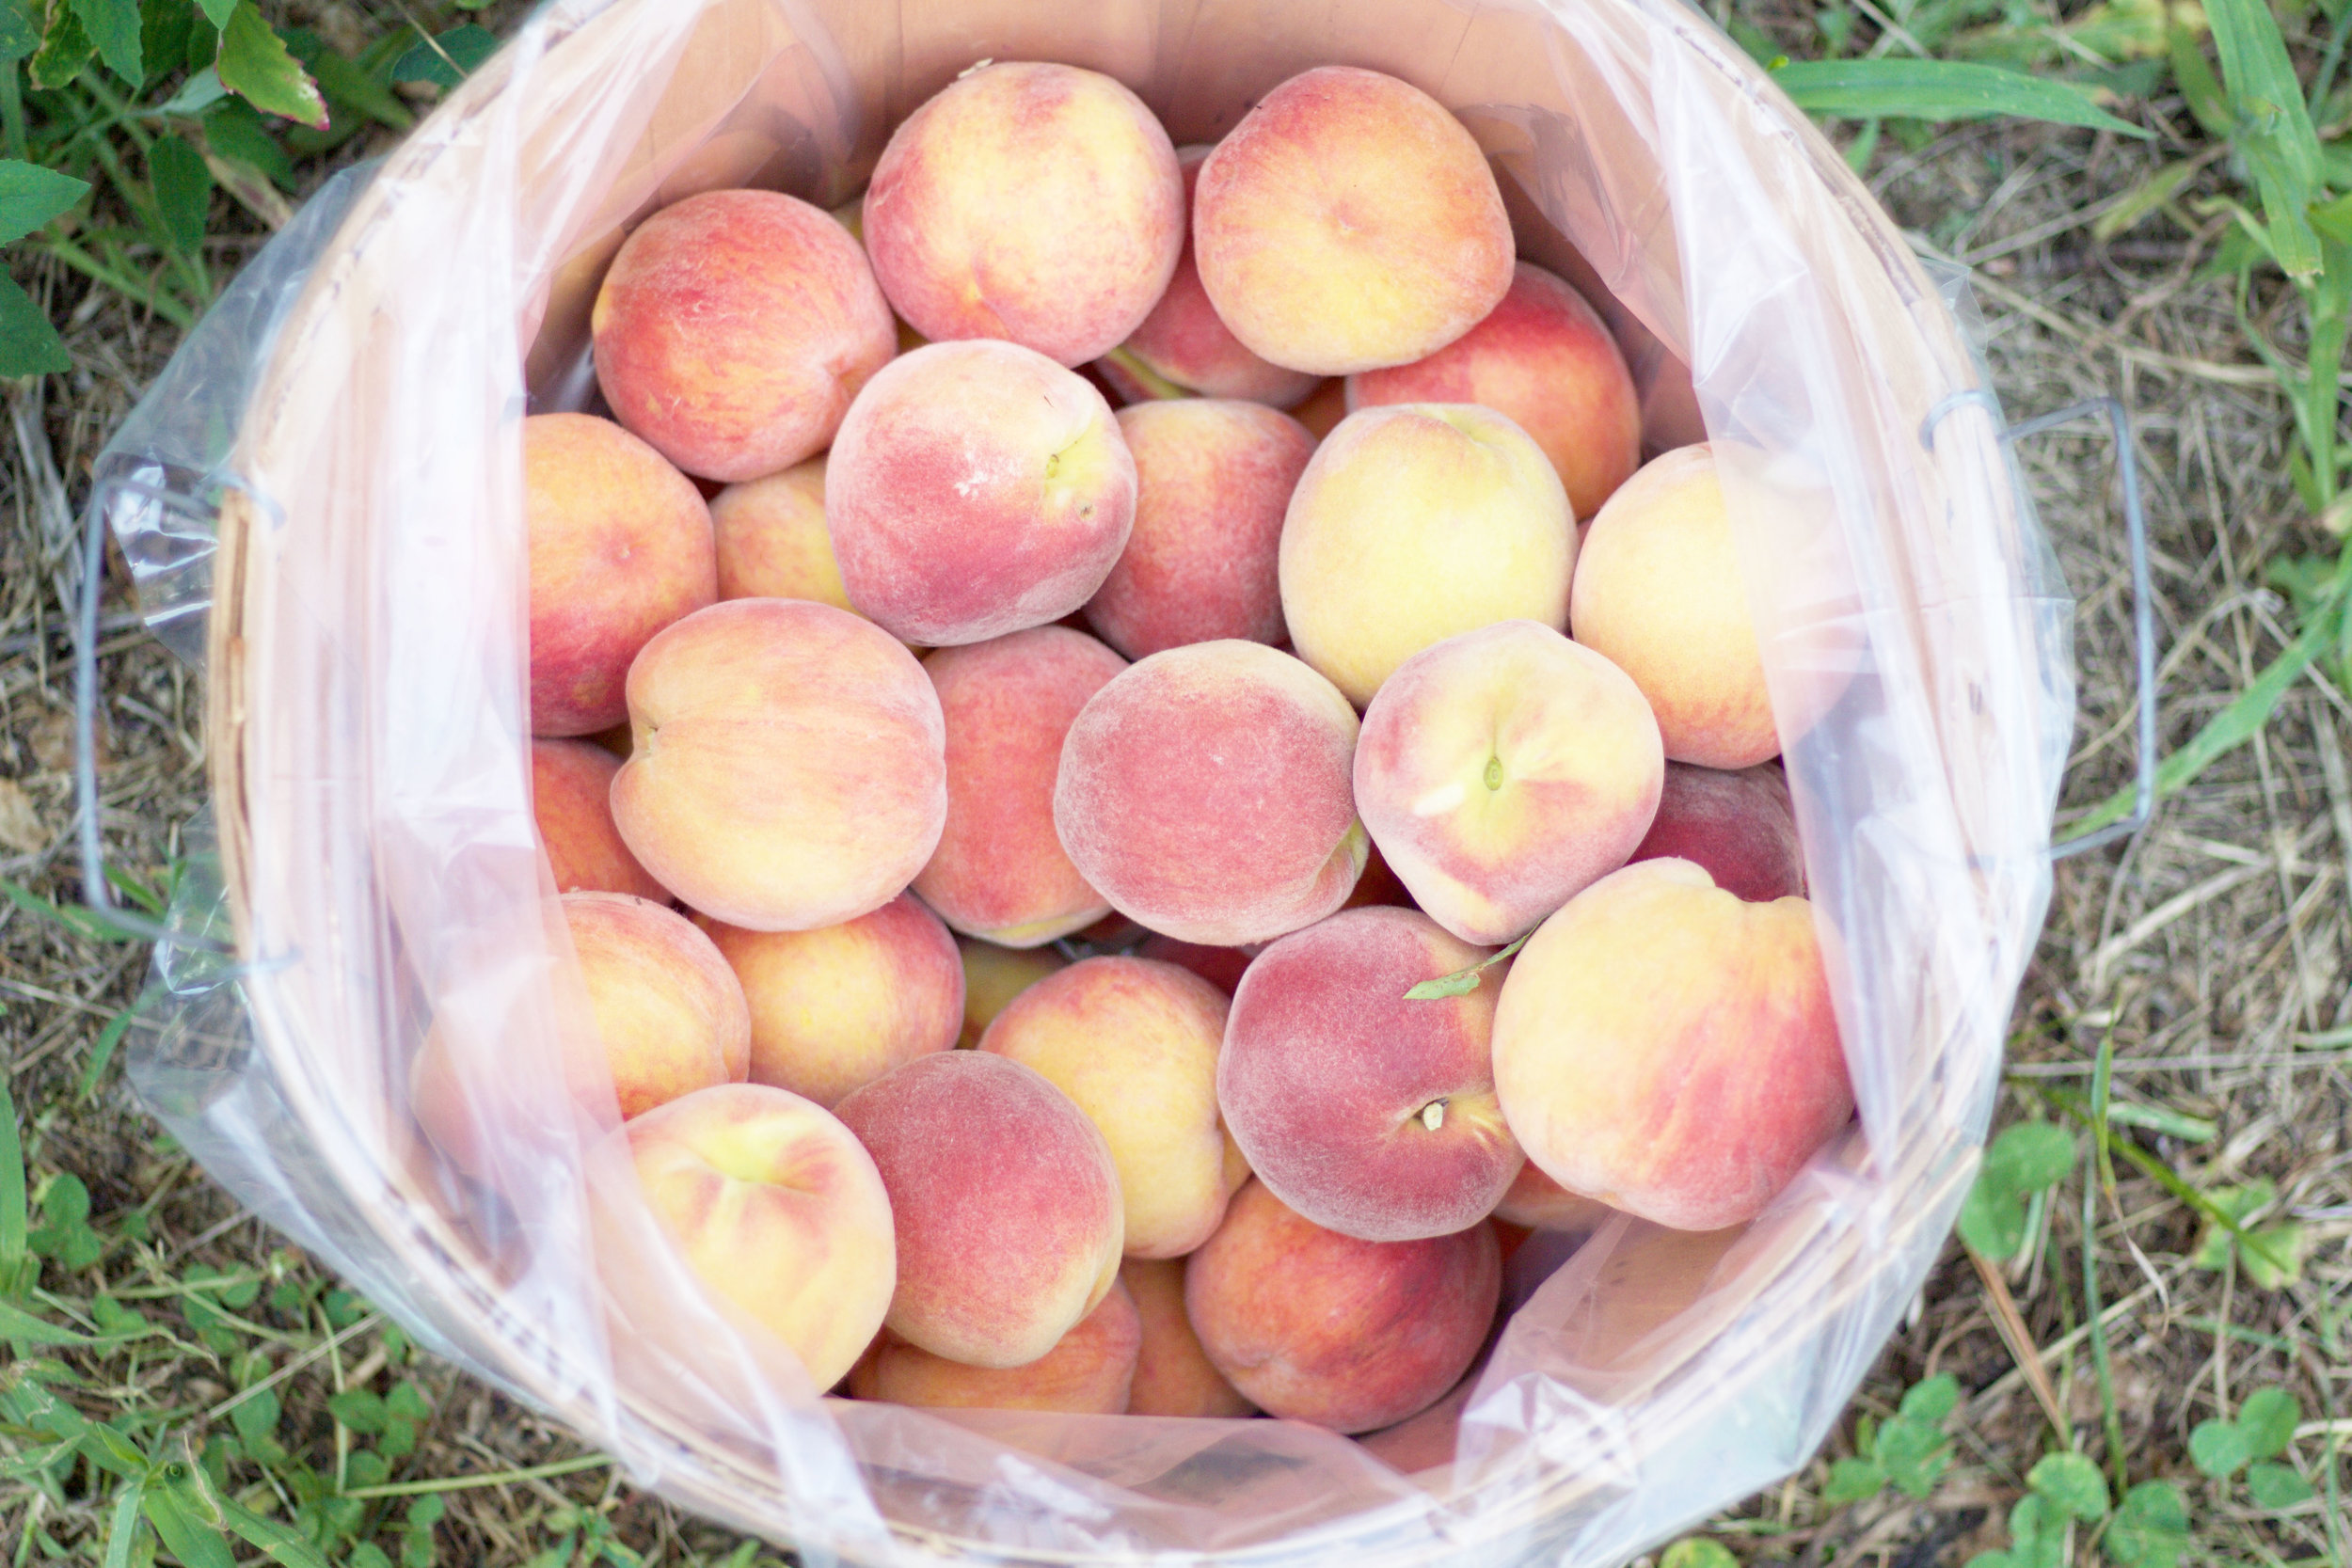 Delicious Peaches, Peach Picking So Dressed Up